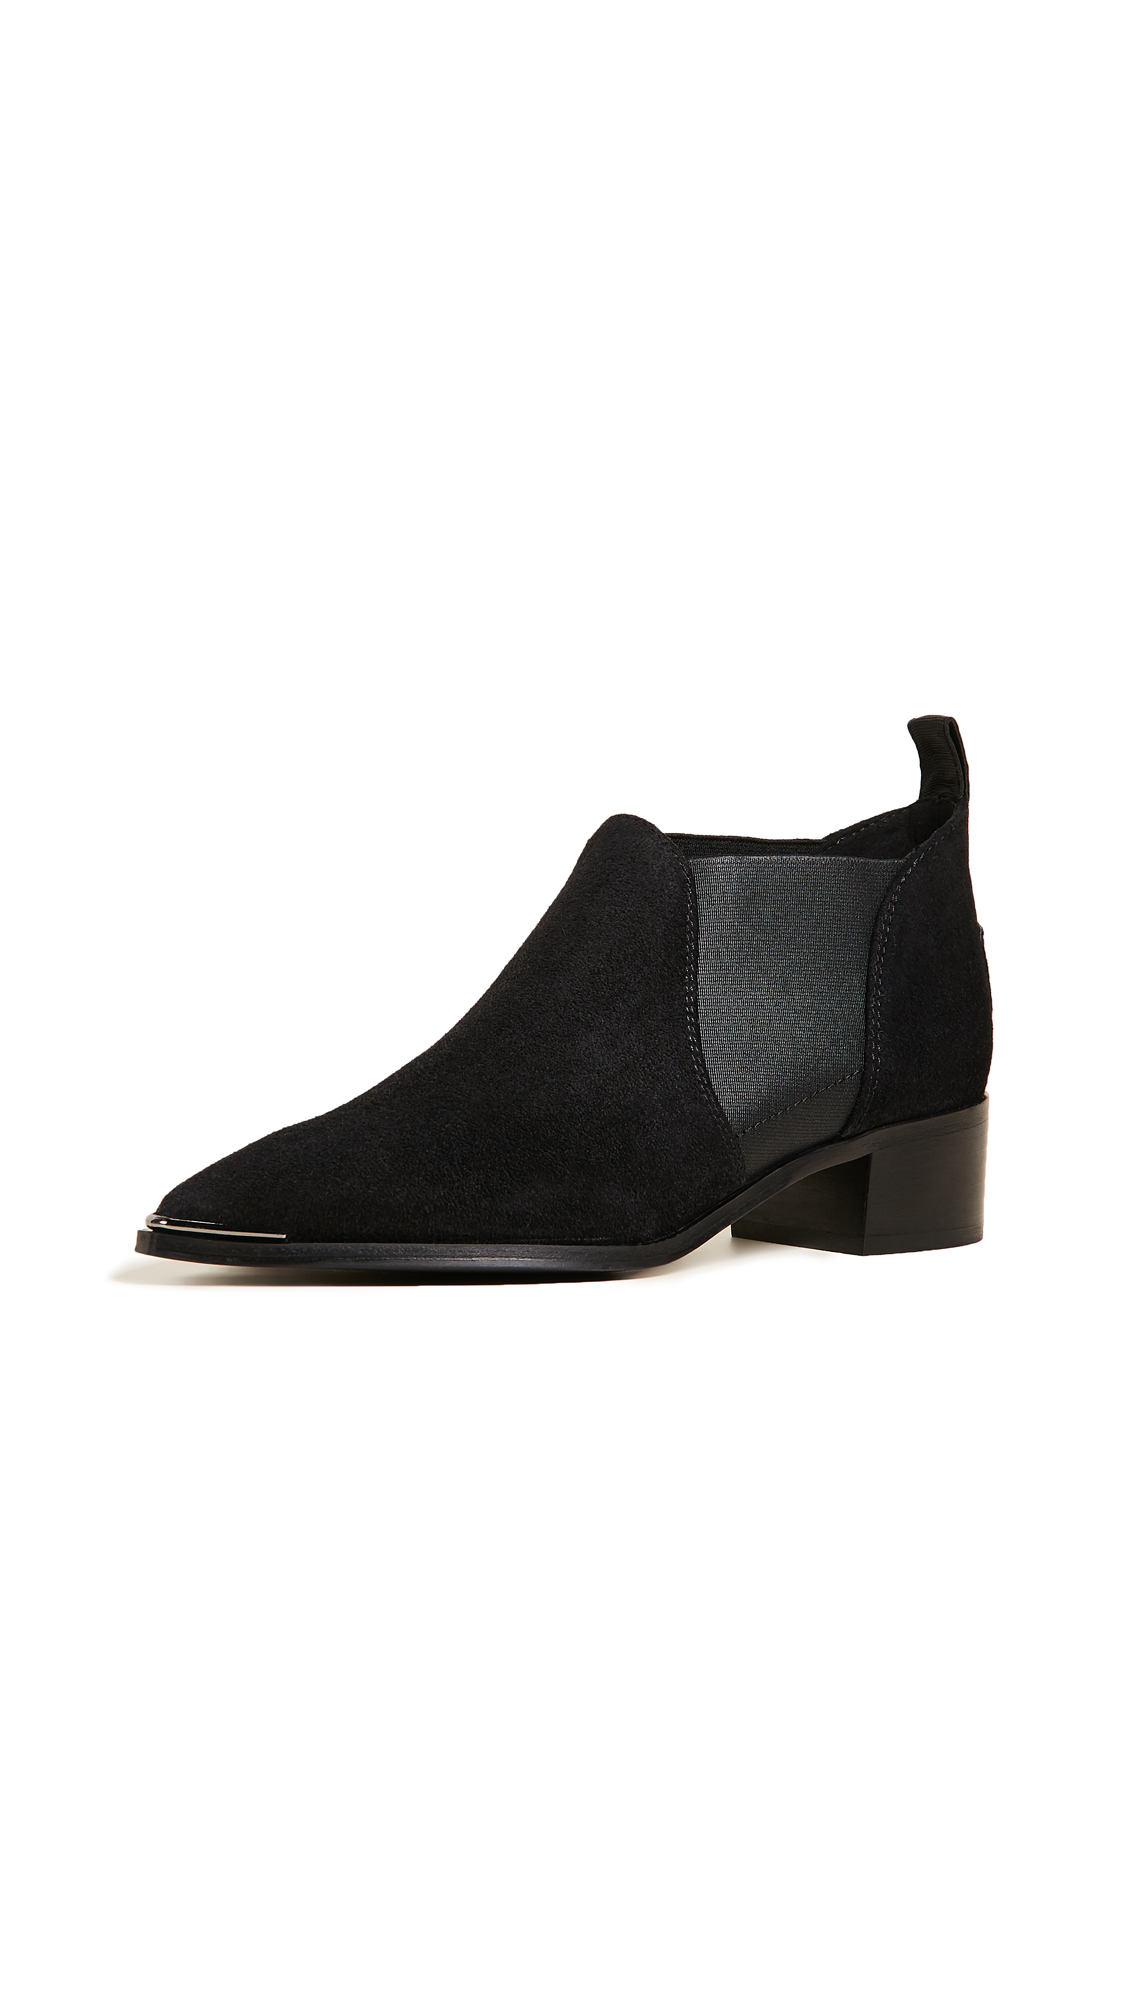 Acne Studios Jenny Suede Booties - Black